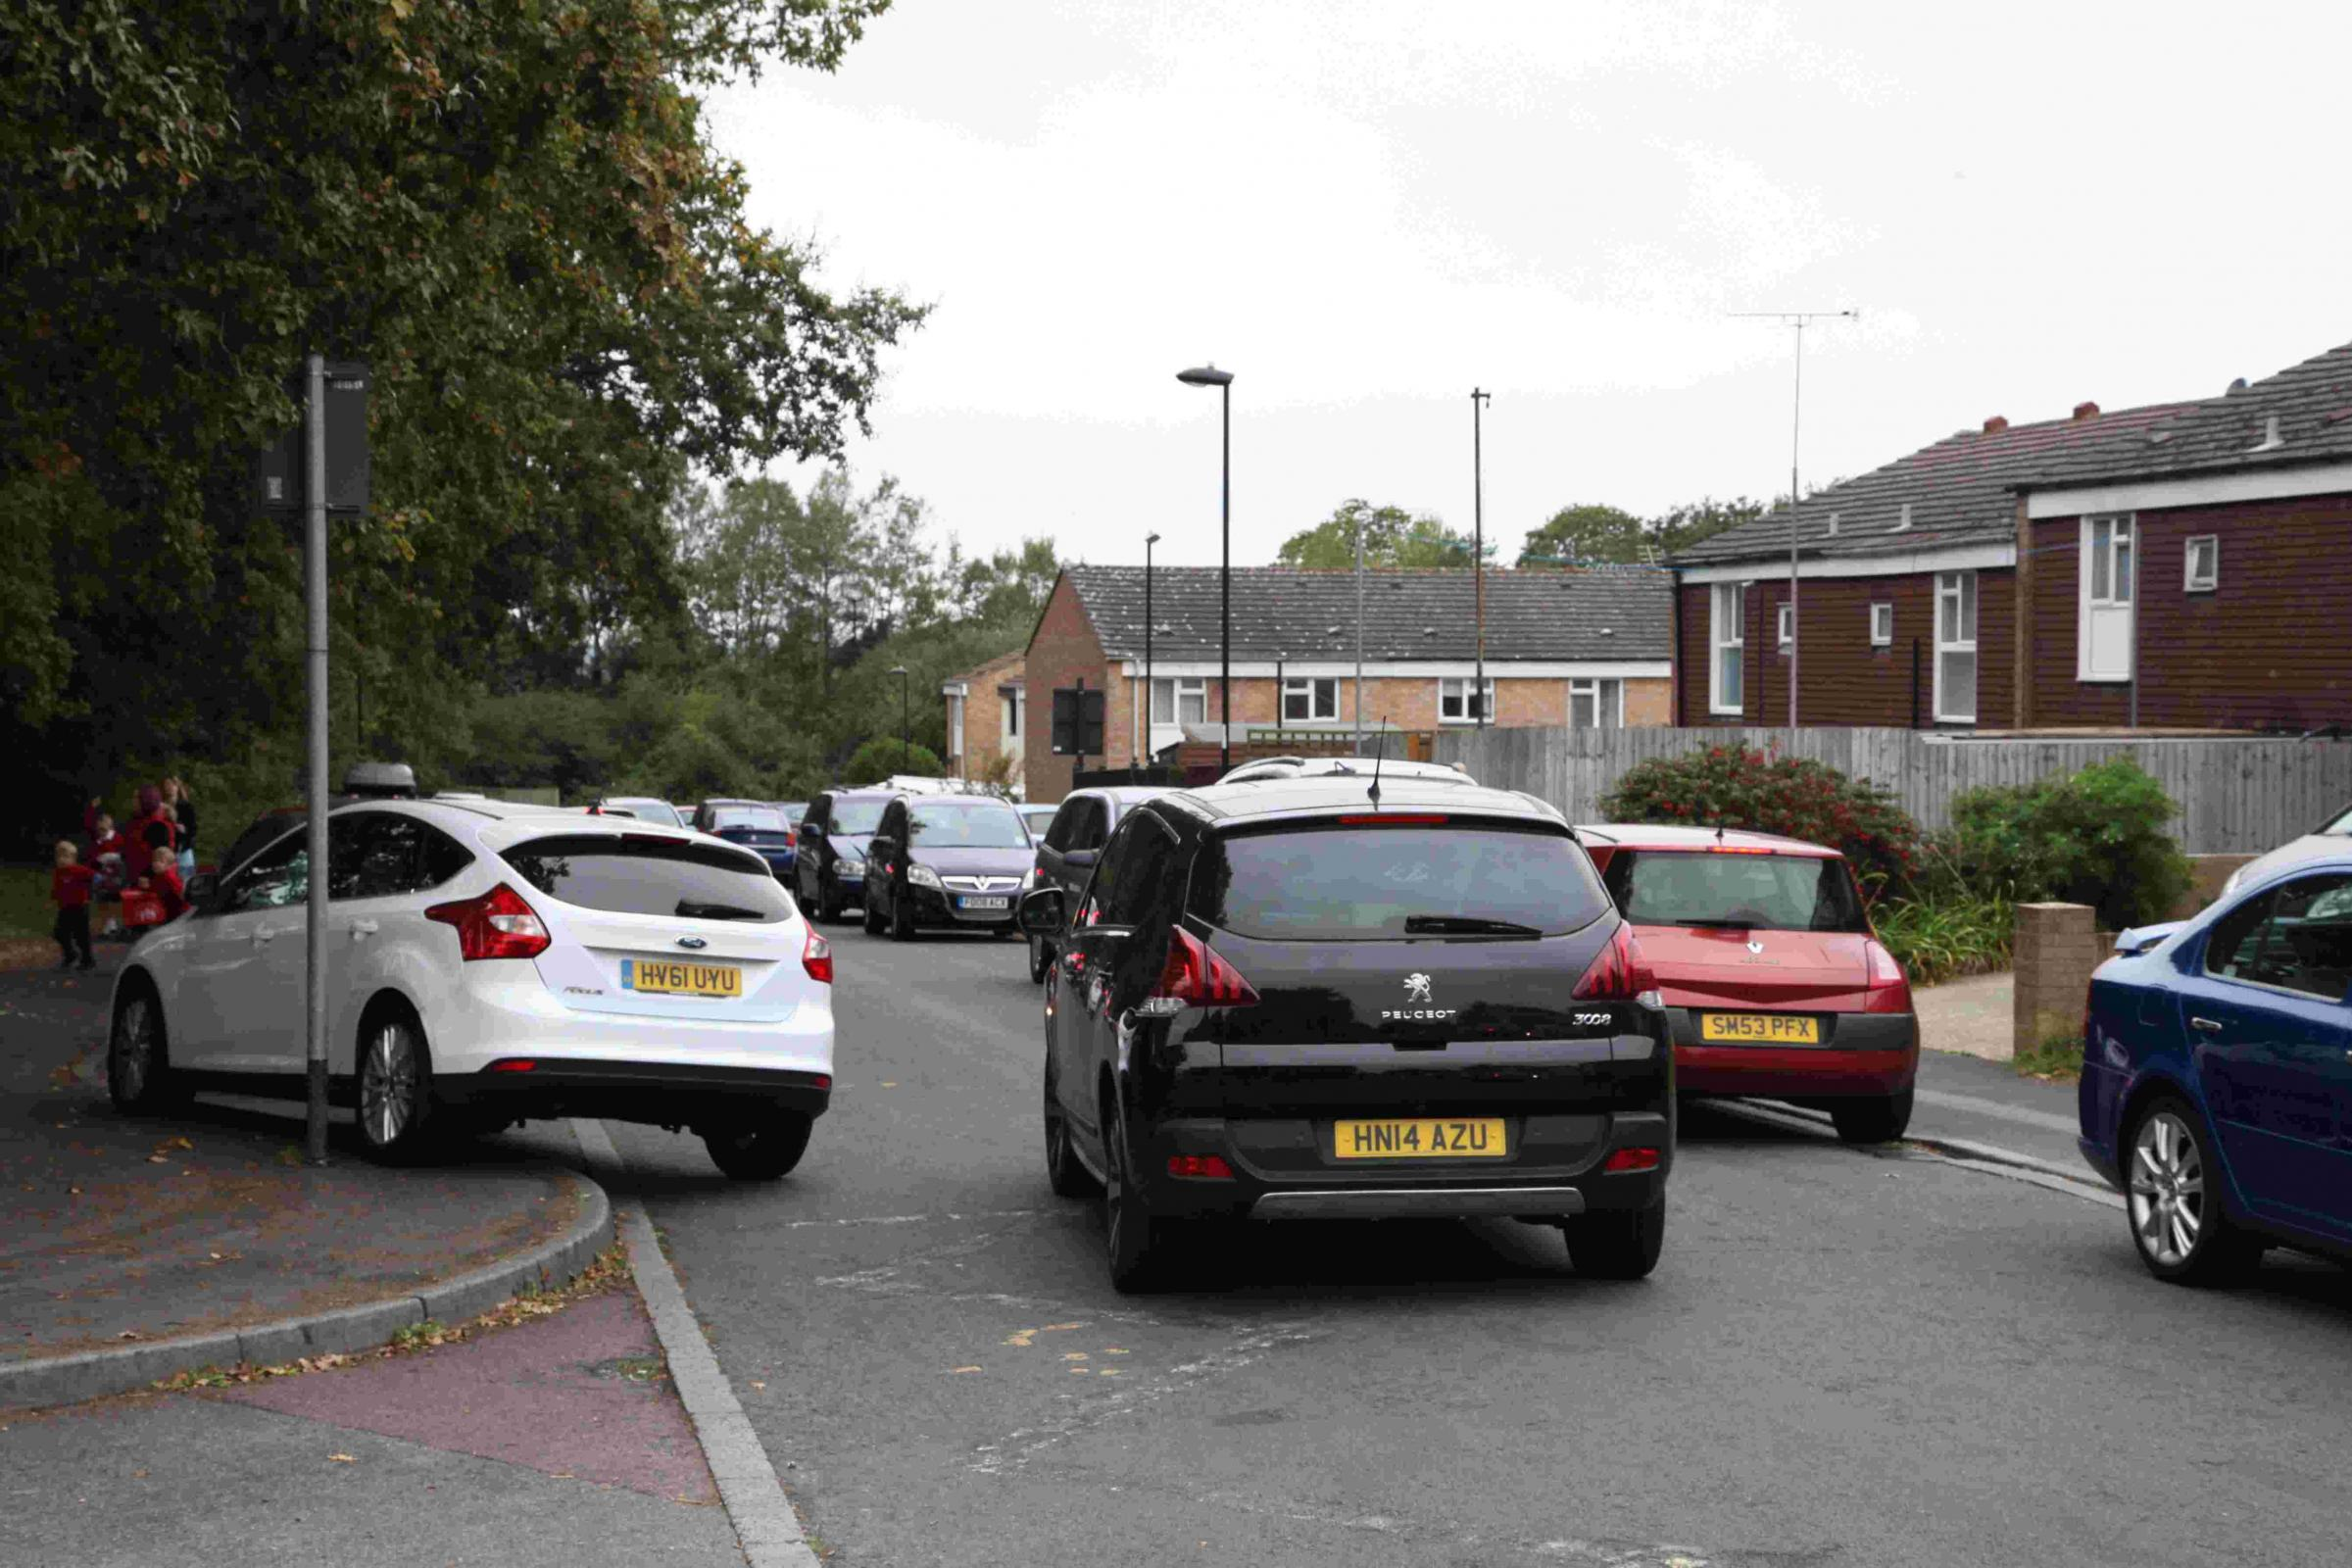 Drivers facing fines for parking on yellow zigzag lines in